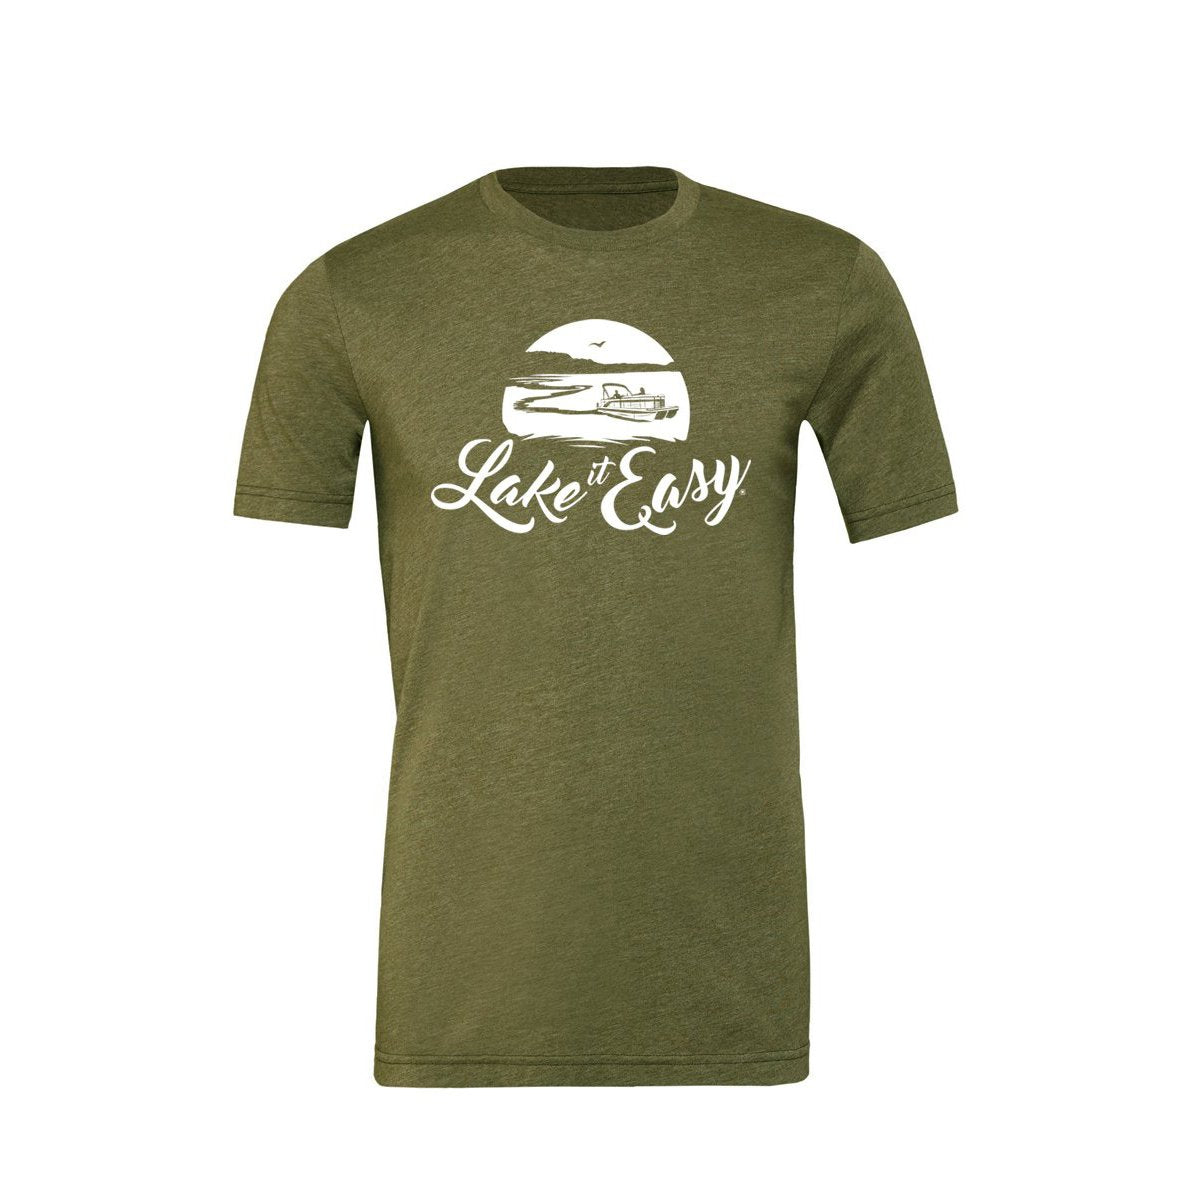 Special Edition: Military Green Short Sleeve Tee